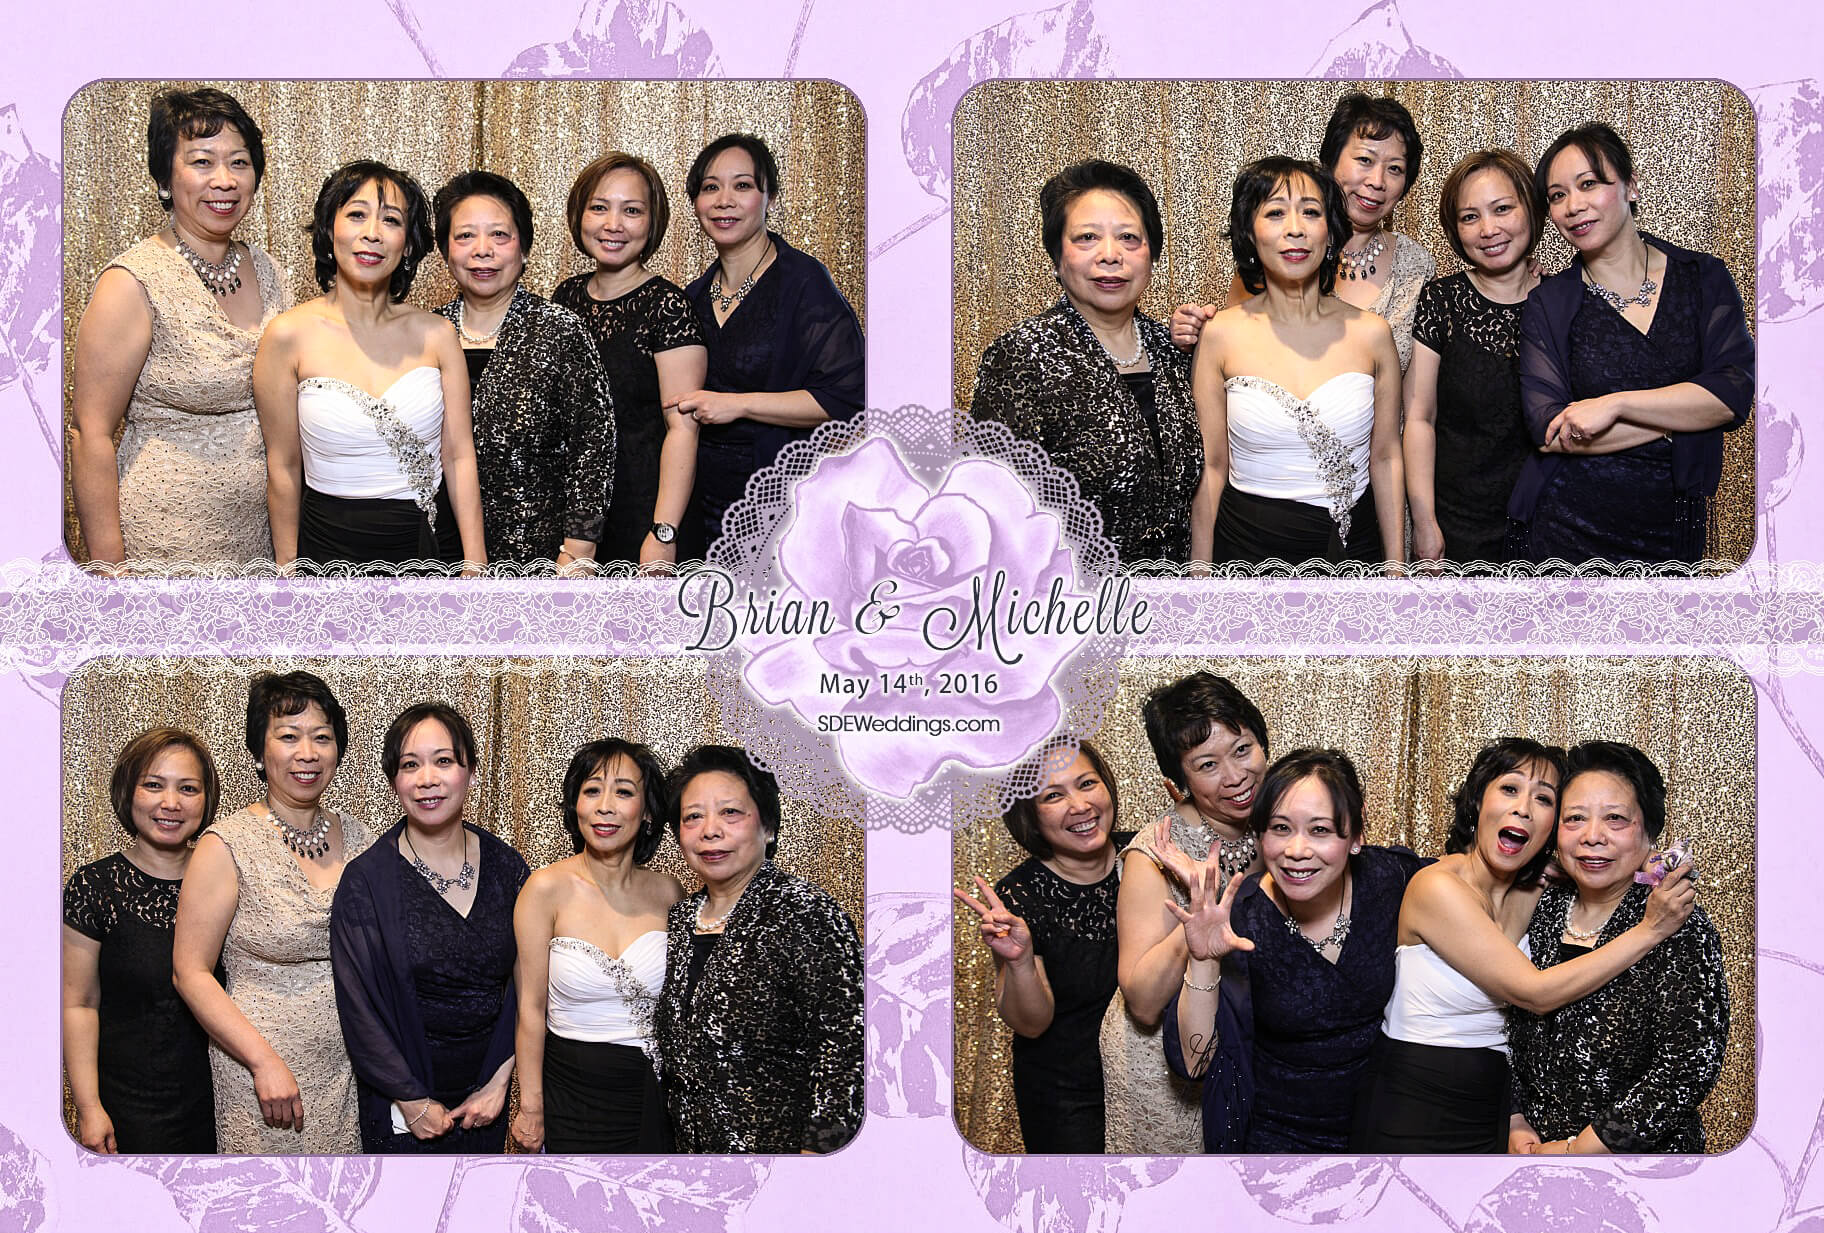 Toronto Universal Event Space Wedding Photo Booth Rental 4